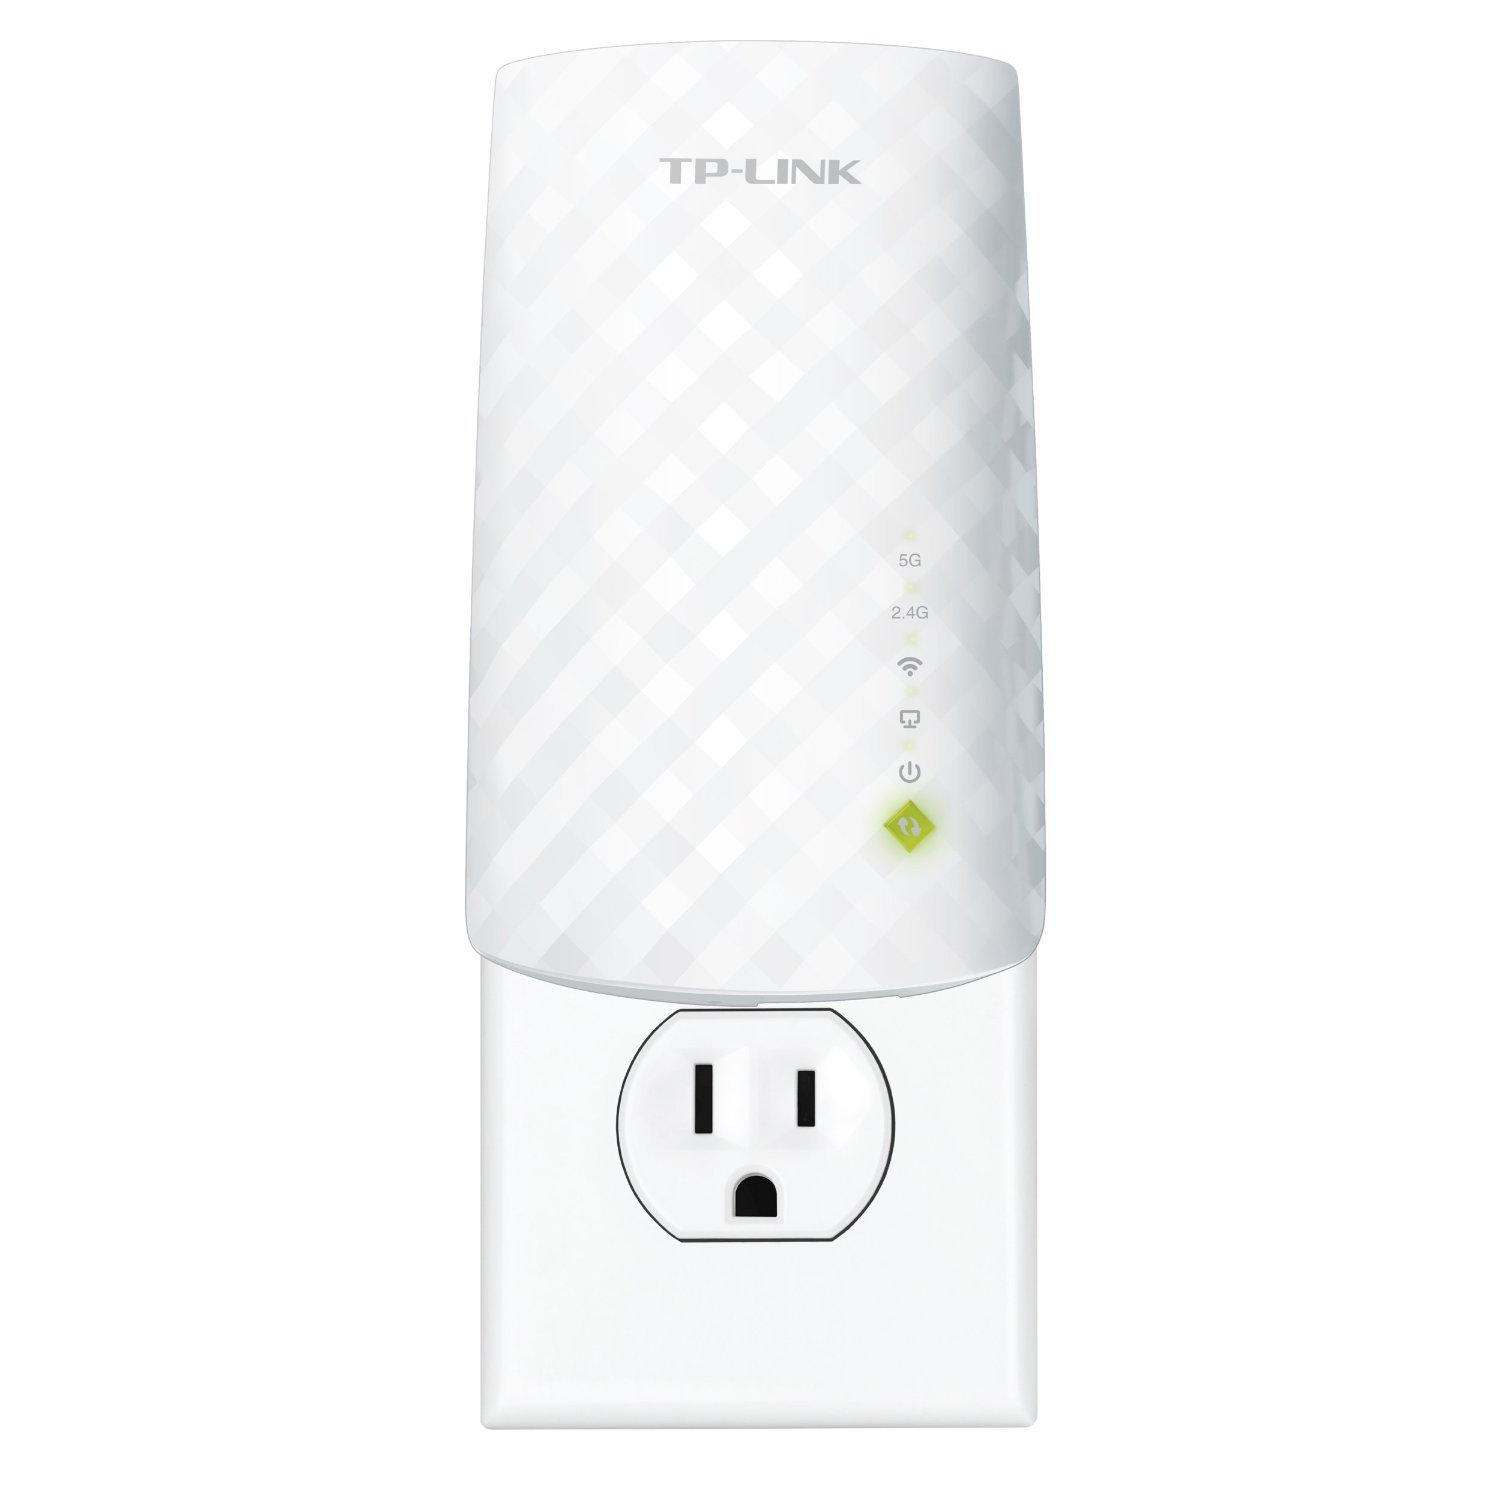 TP-LINK Dual Band Wireless Gigabit Router